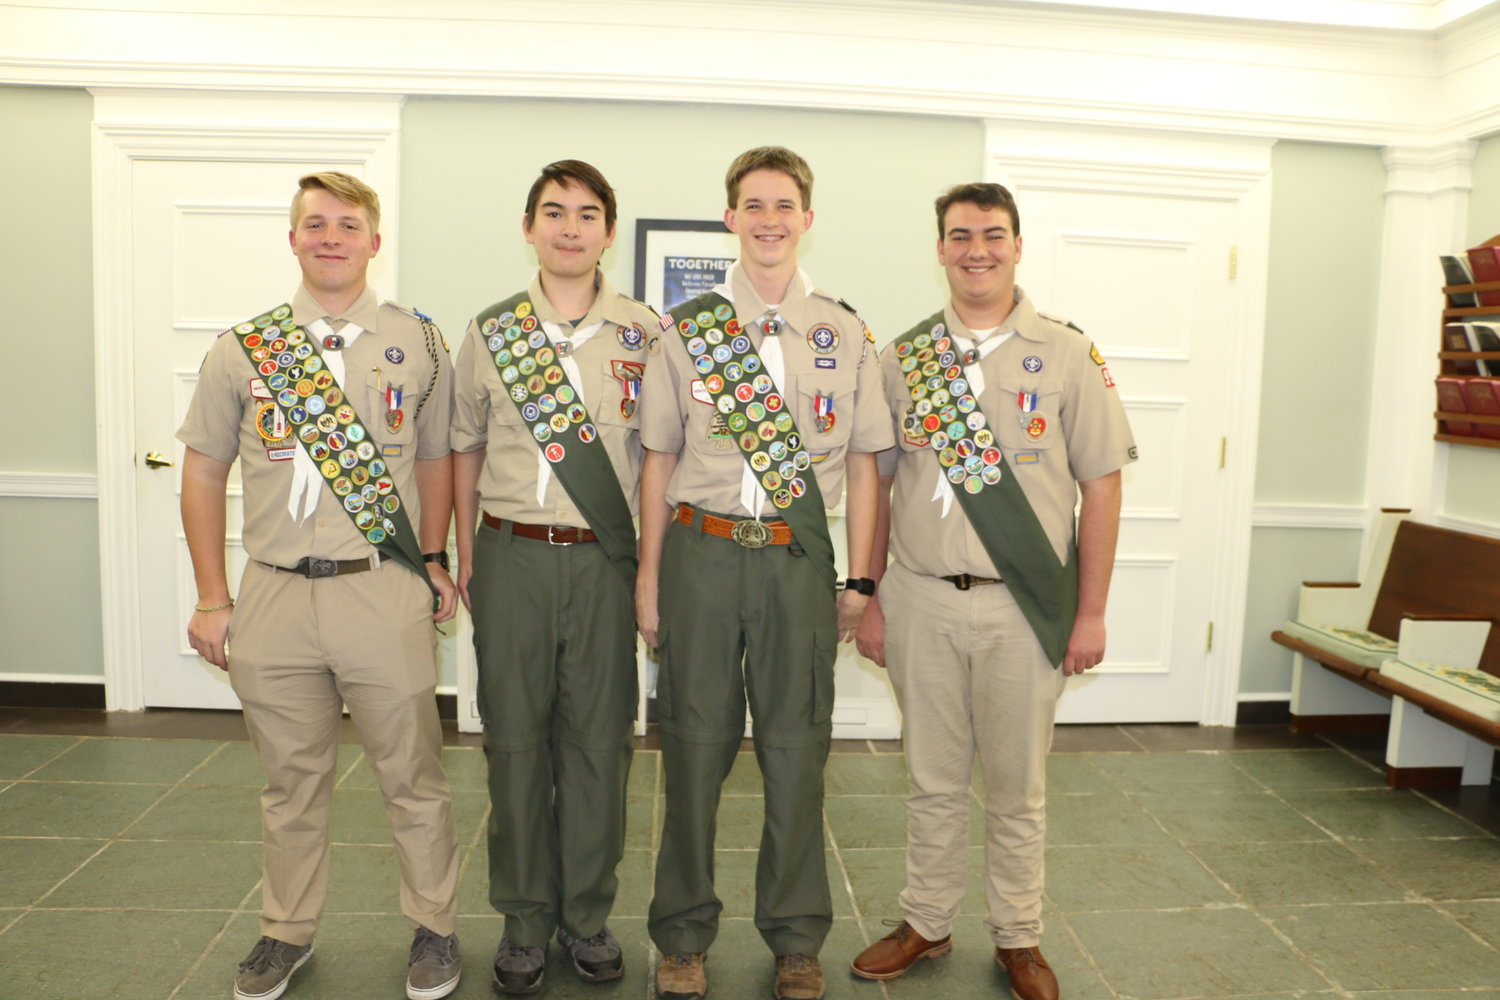 (L-R) Hunter Reeves, David Scarlett, Erick Howard and Mitch Decker recently completed projects that benefit the community as a way of working toward their status as Eagle Scouts.